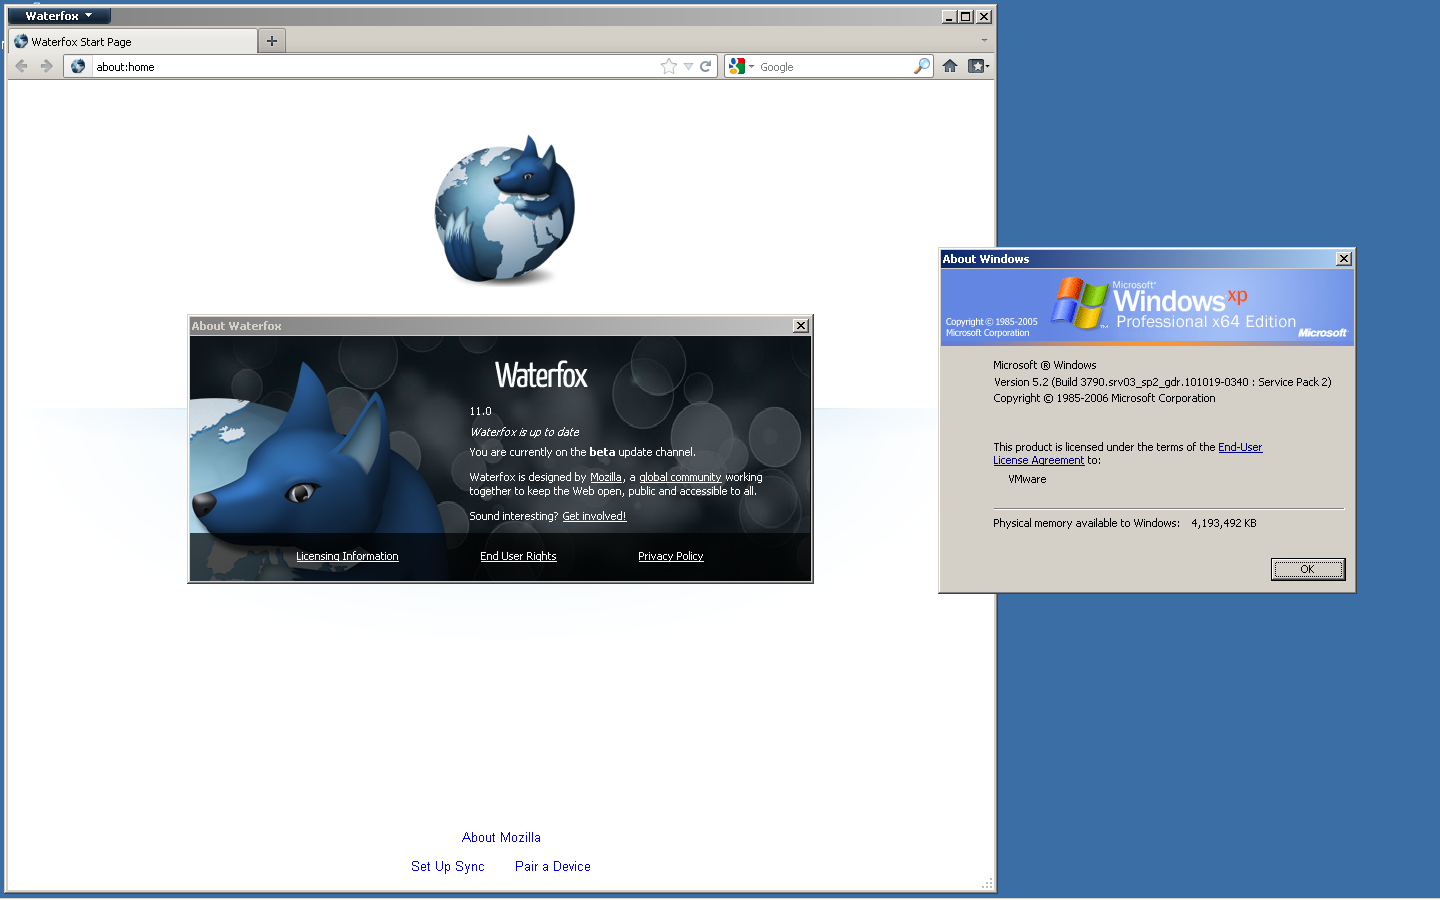 Waterfox 56 0 2: 7 January [Free, open and private web browser